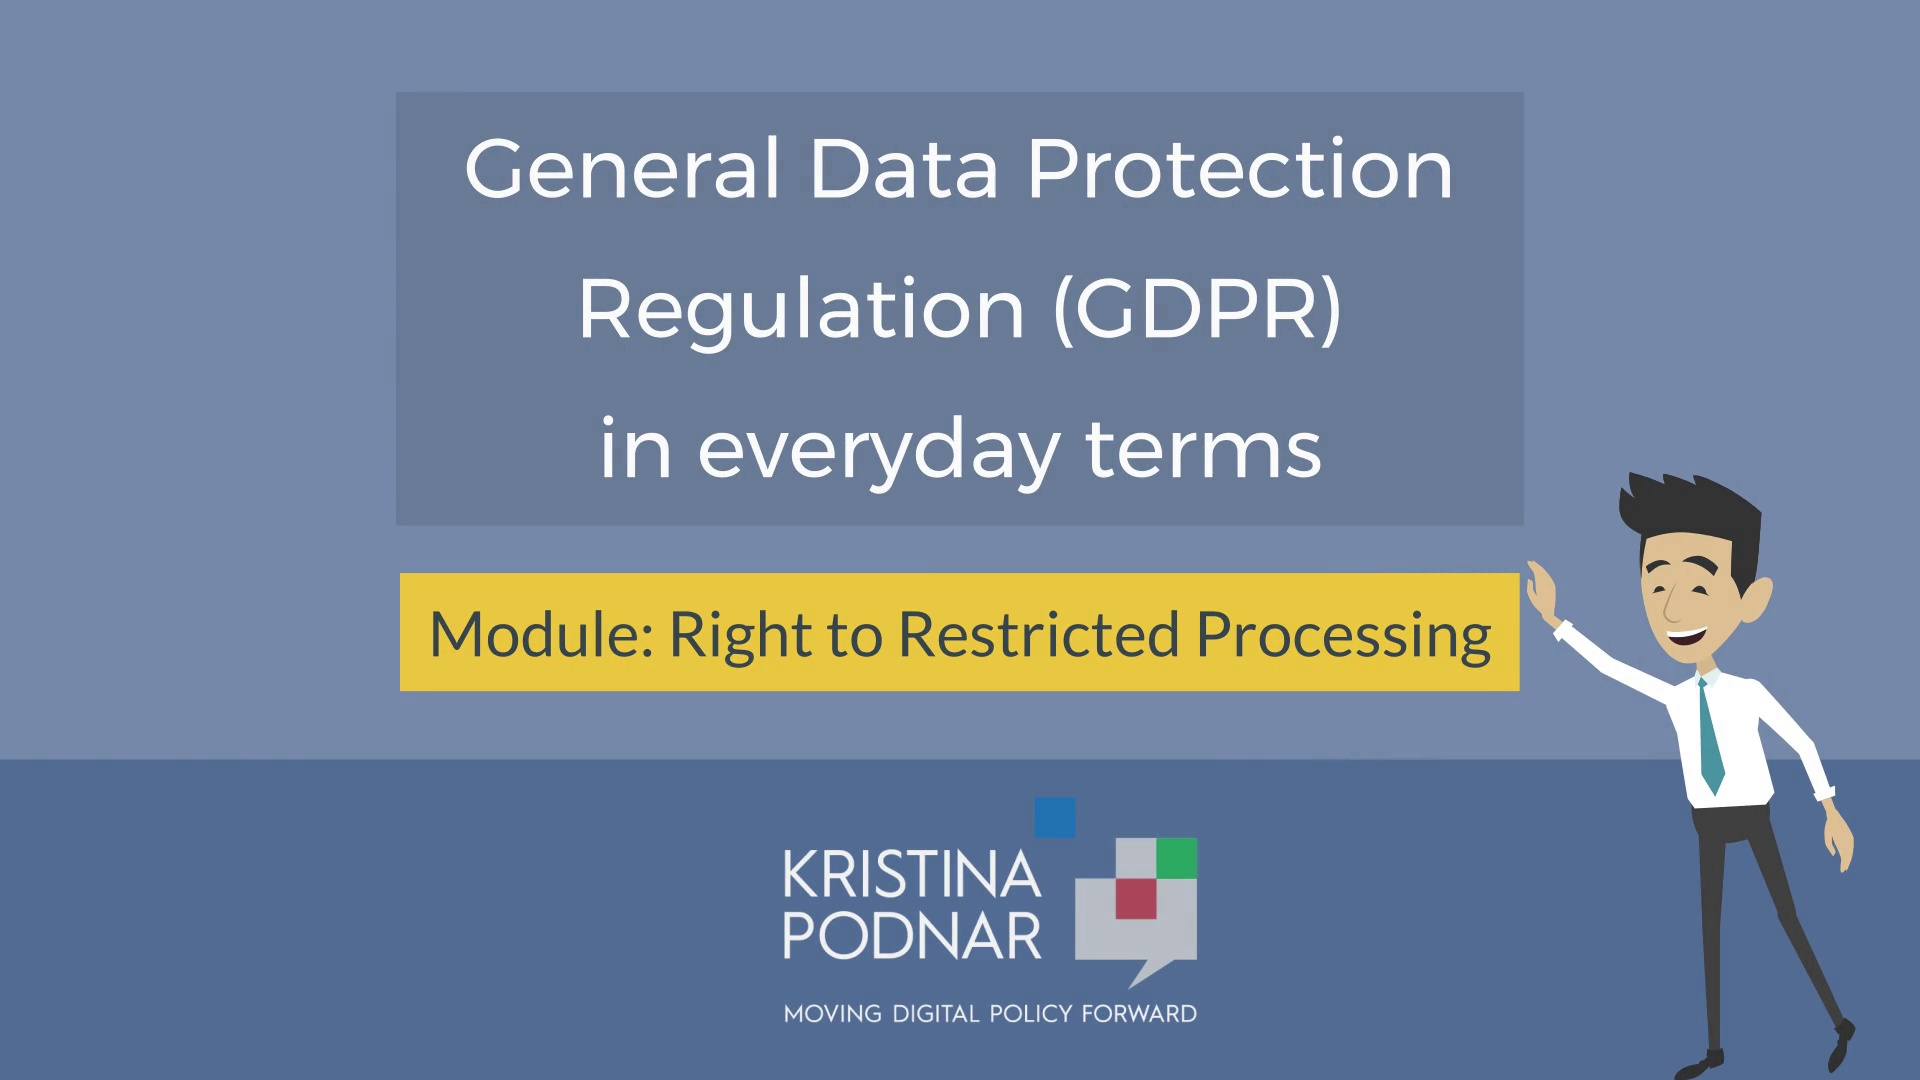 GDPR:  Right to Restricted Processing